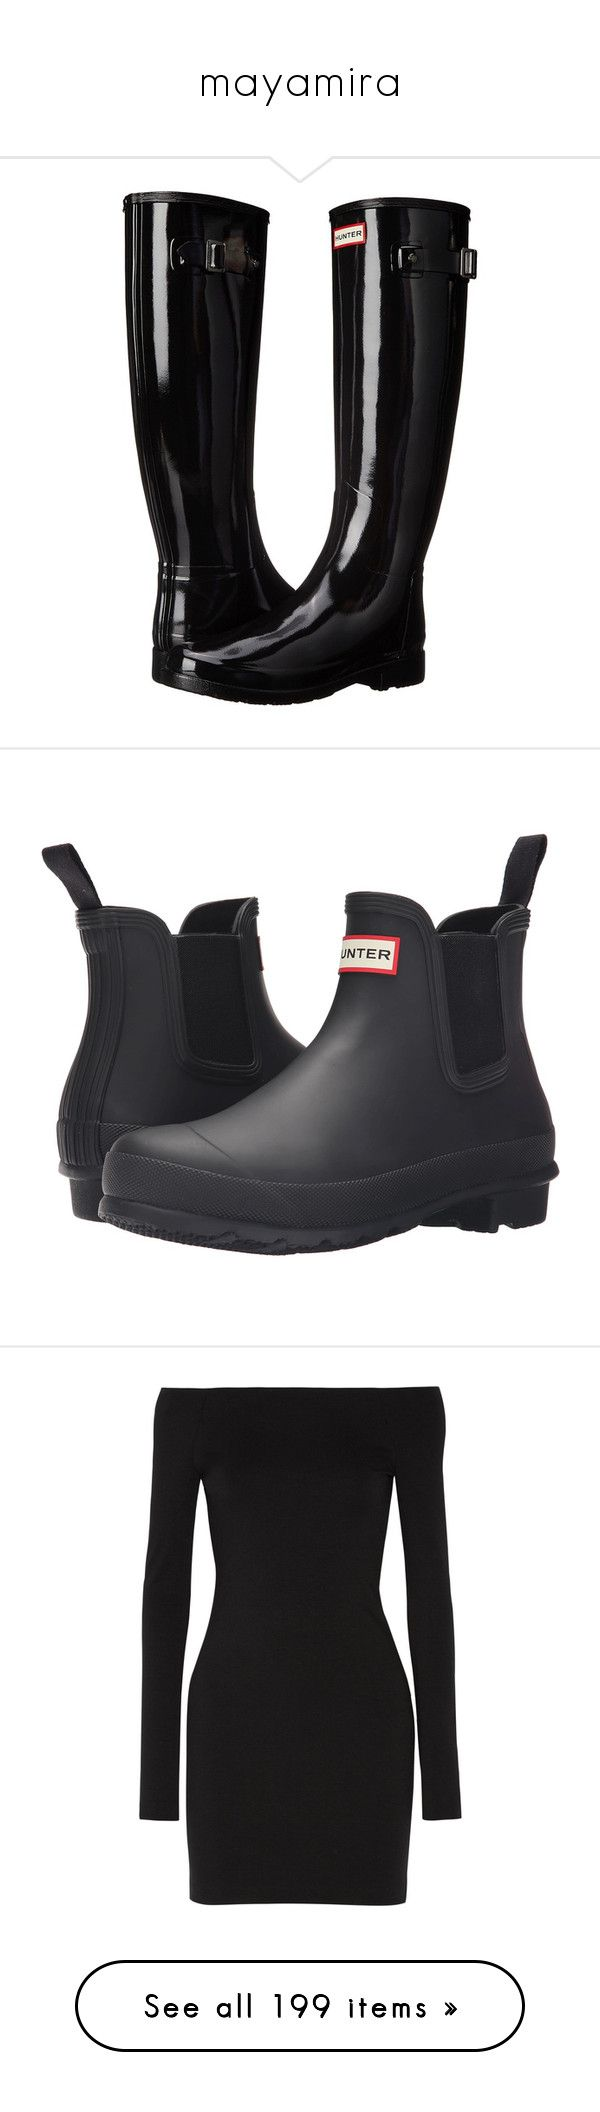 """""""mayamira"""" by hogwartsdragoness ❤ liked on Polyvore featuring shoes, boots, knee-high boots, black boots, knee high rain boots, black rain boots, rain boots, black knee boots, rubber rain boots and waterproof slip on boots"""